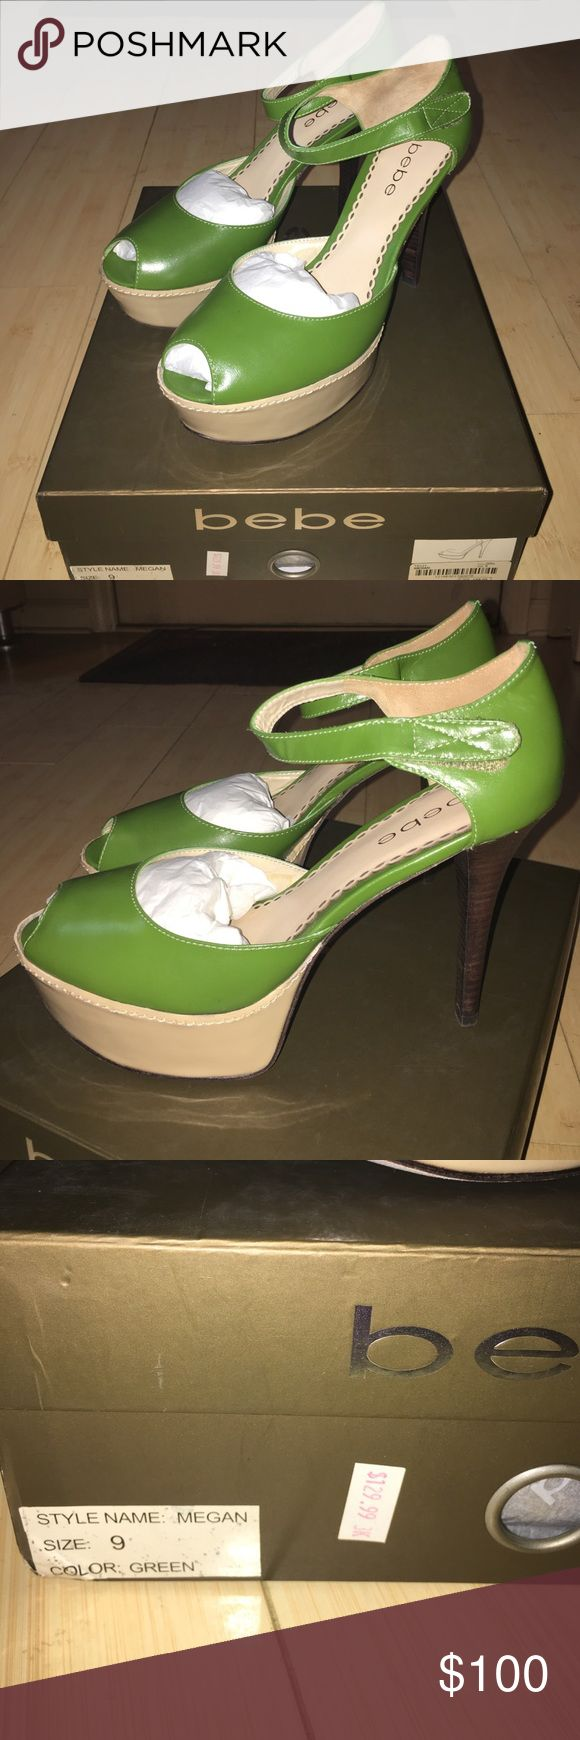 Bebe size 9 green Megan 4 1/2 in heel Bebe 4 1/2 in heels, 1 1/2 in platform, green Megan style. Retail tag of 149.00, sale tag 129.99. Slighty scuffed soles as they were never worn out of the house. bebe Shoes Heels